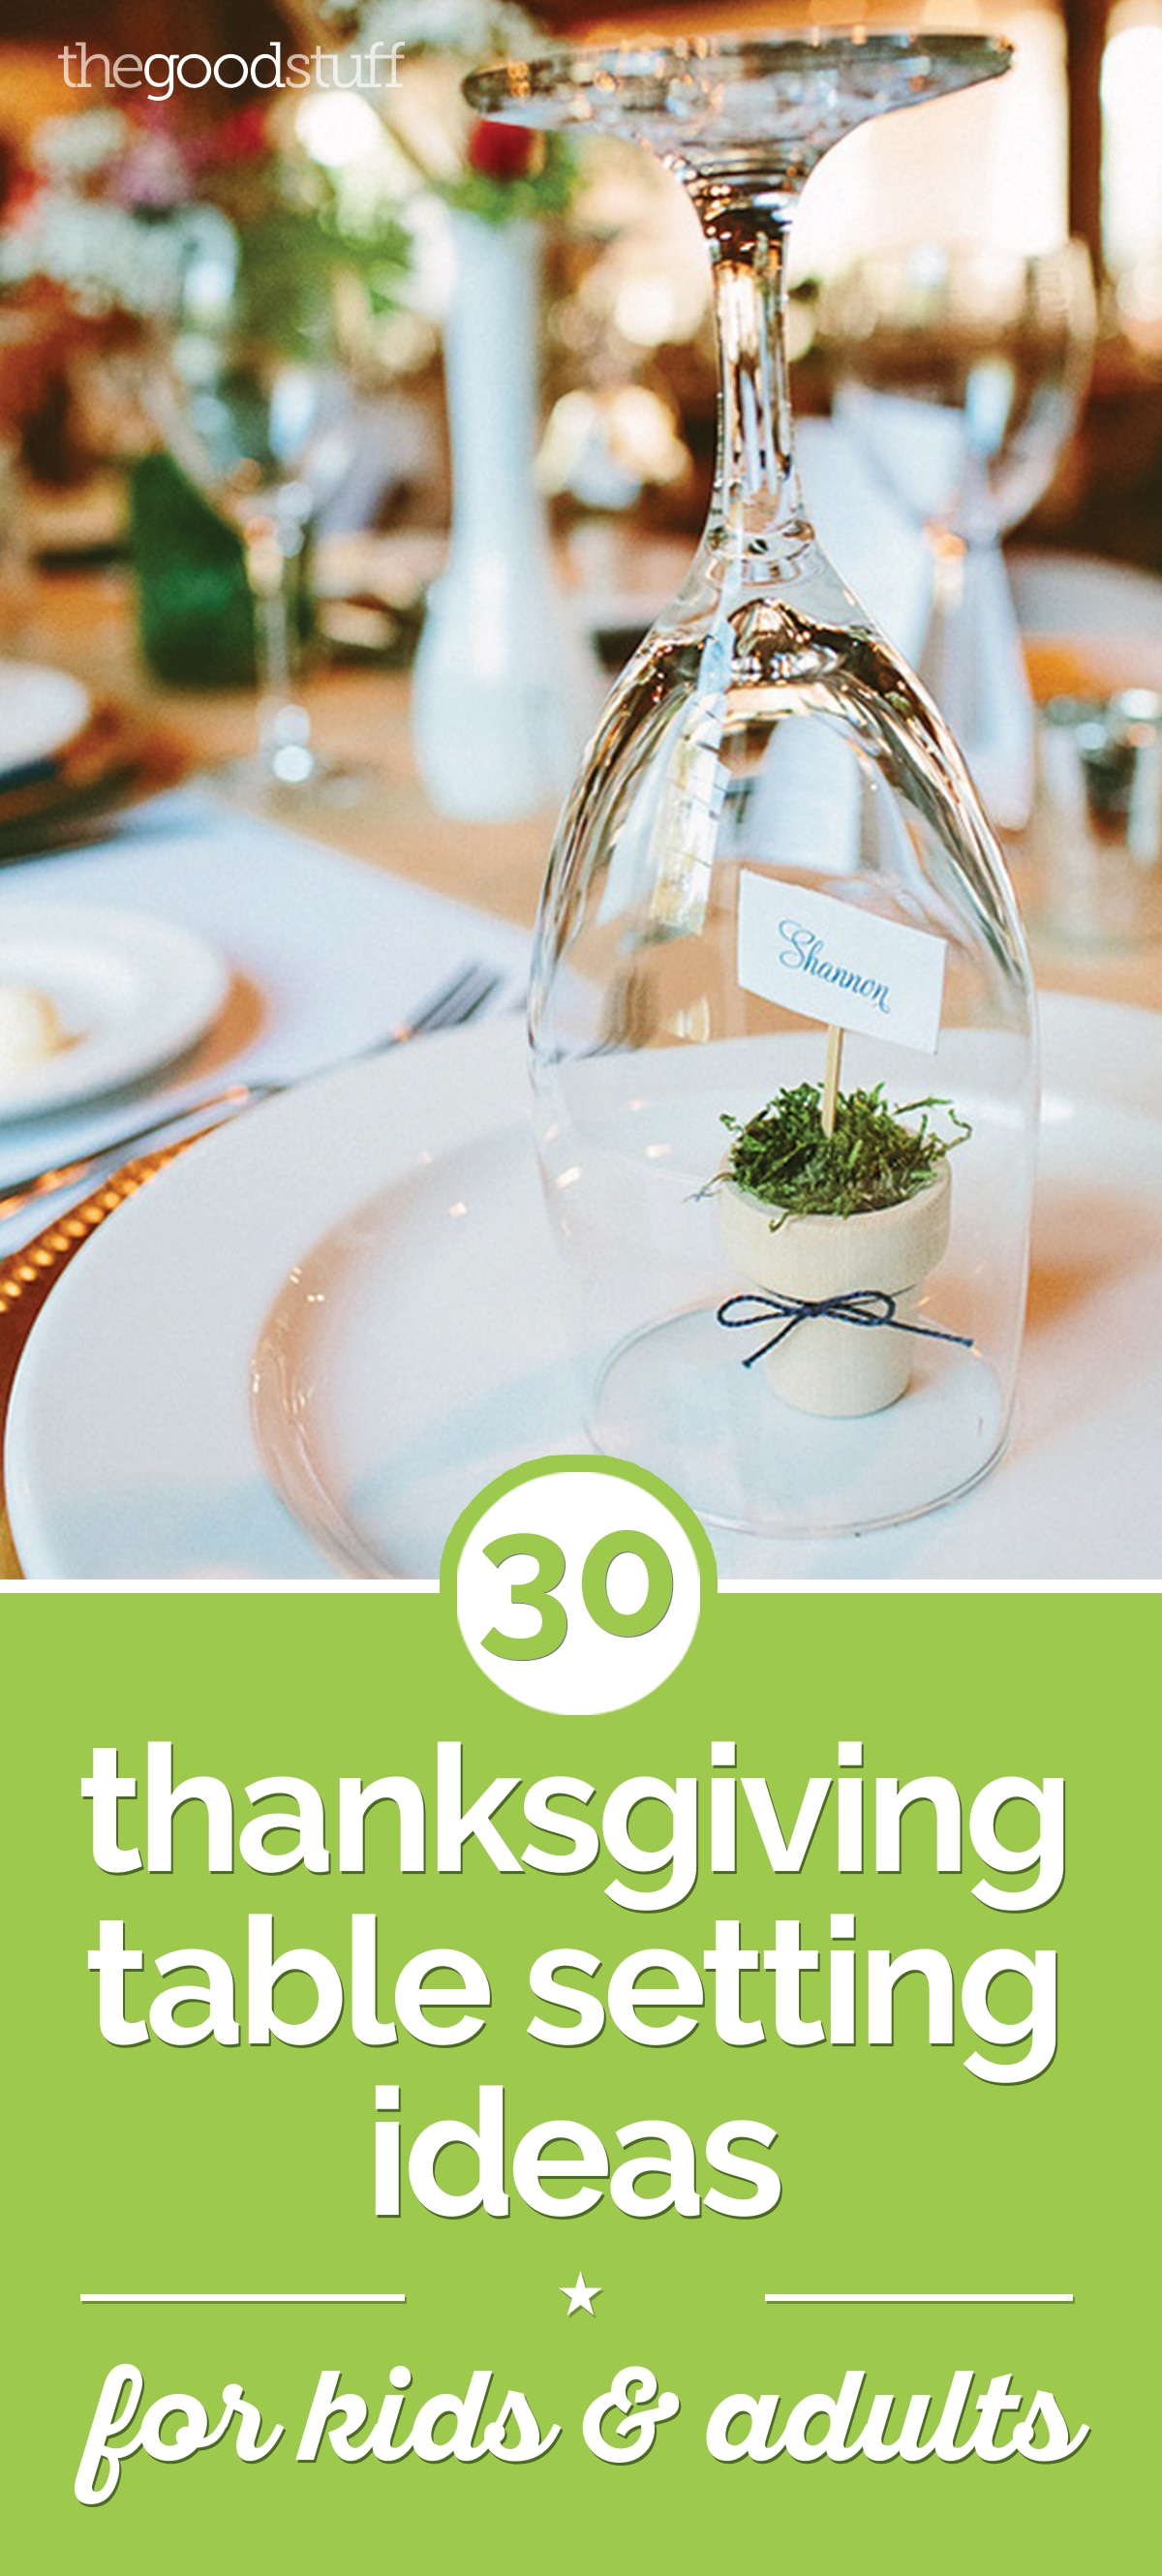 30 Thanksgiving Table Setting Ideas for Kids u0026 Adults | thegoodstuff & 31 Thanksgiving Table Setting Ideas for Kids u0026 Adults - thegoodstuff